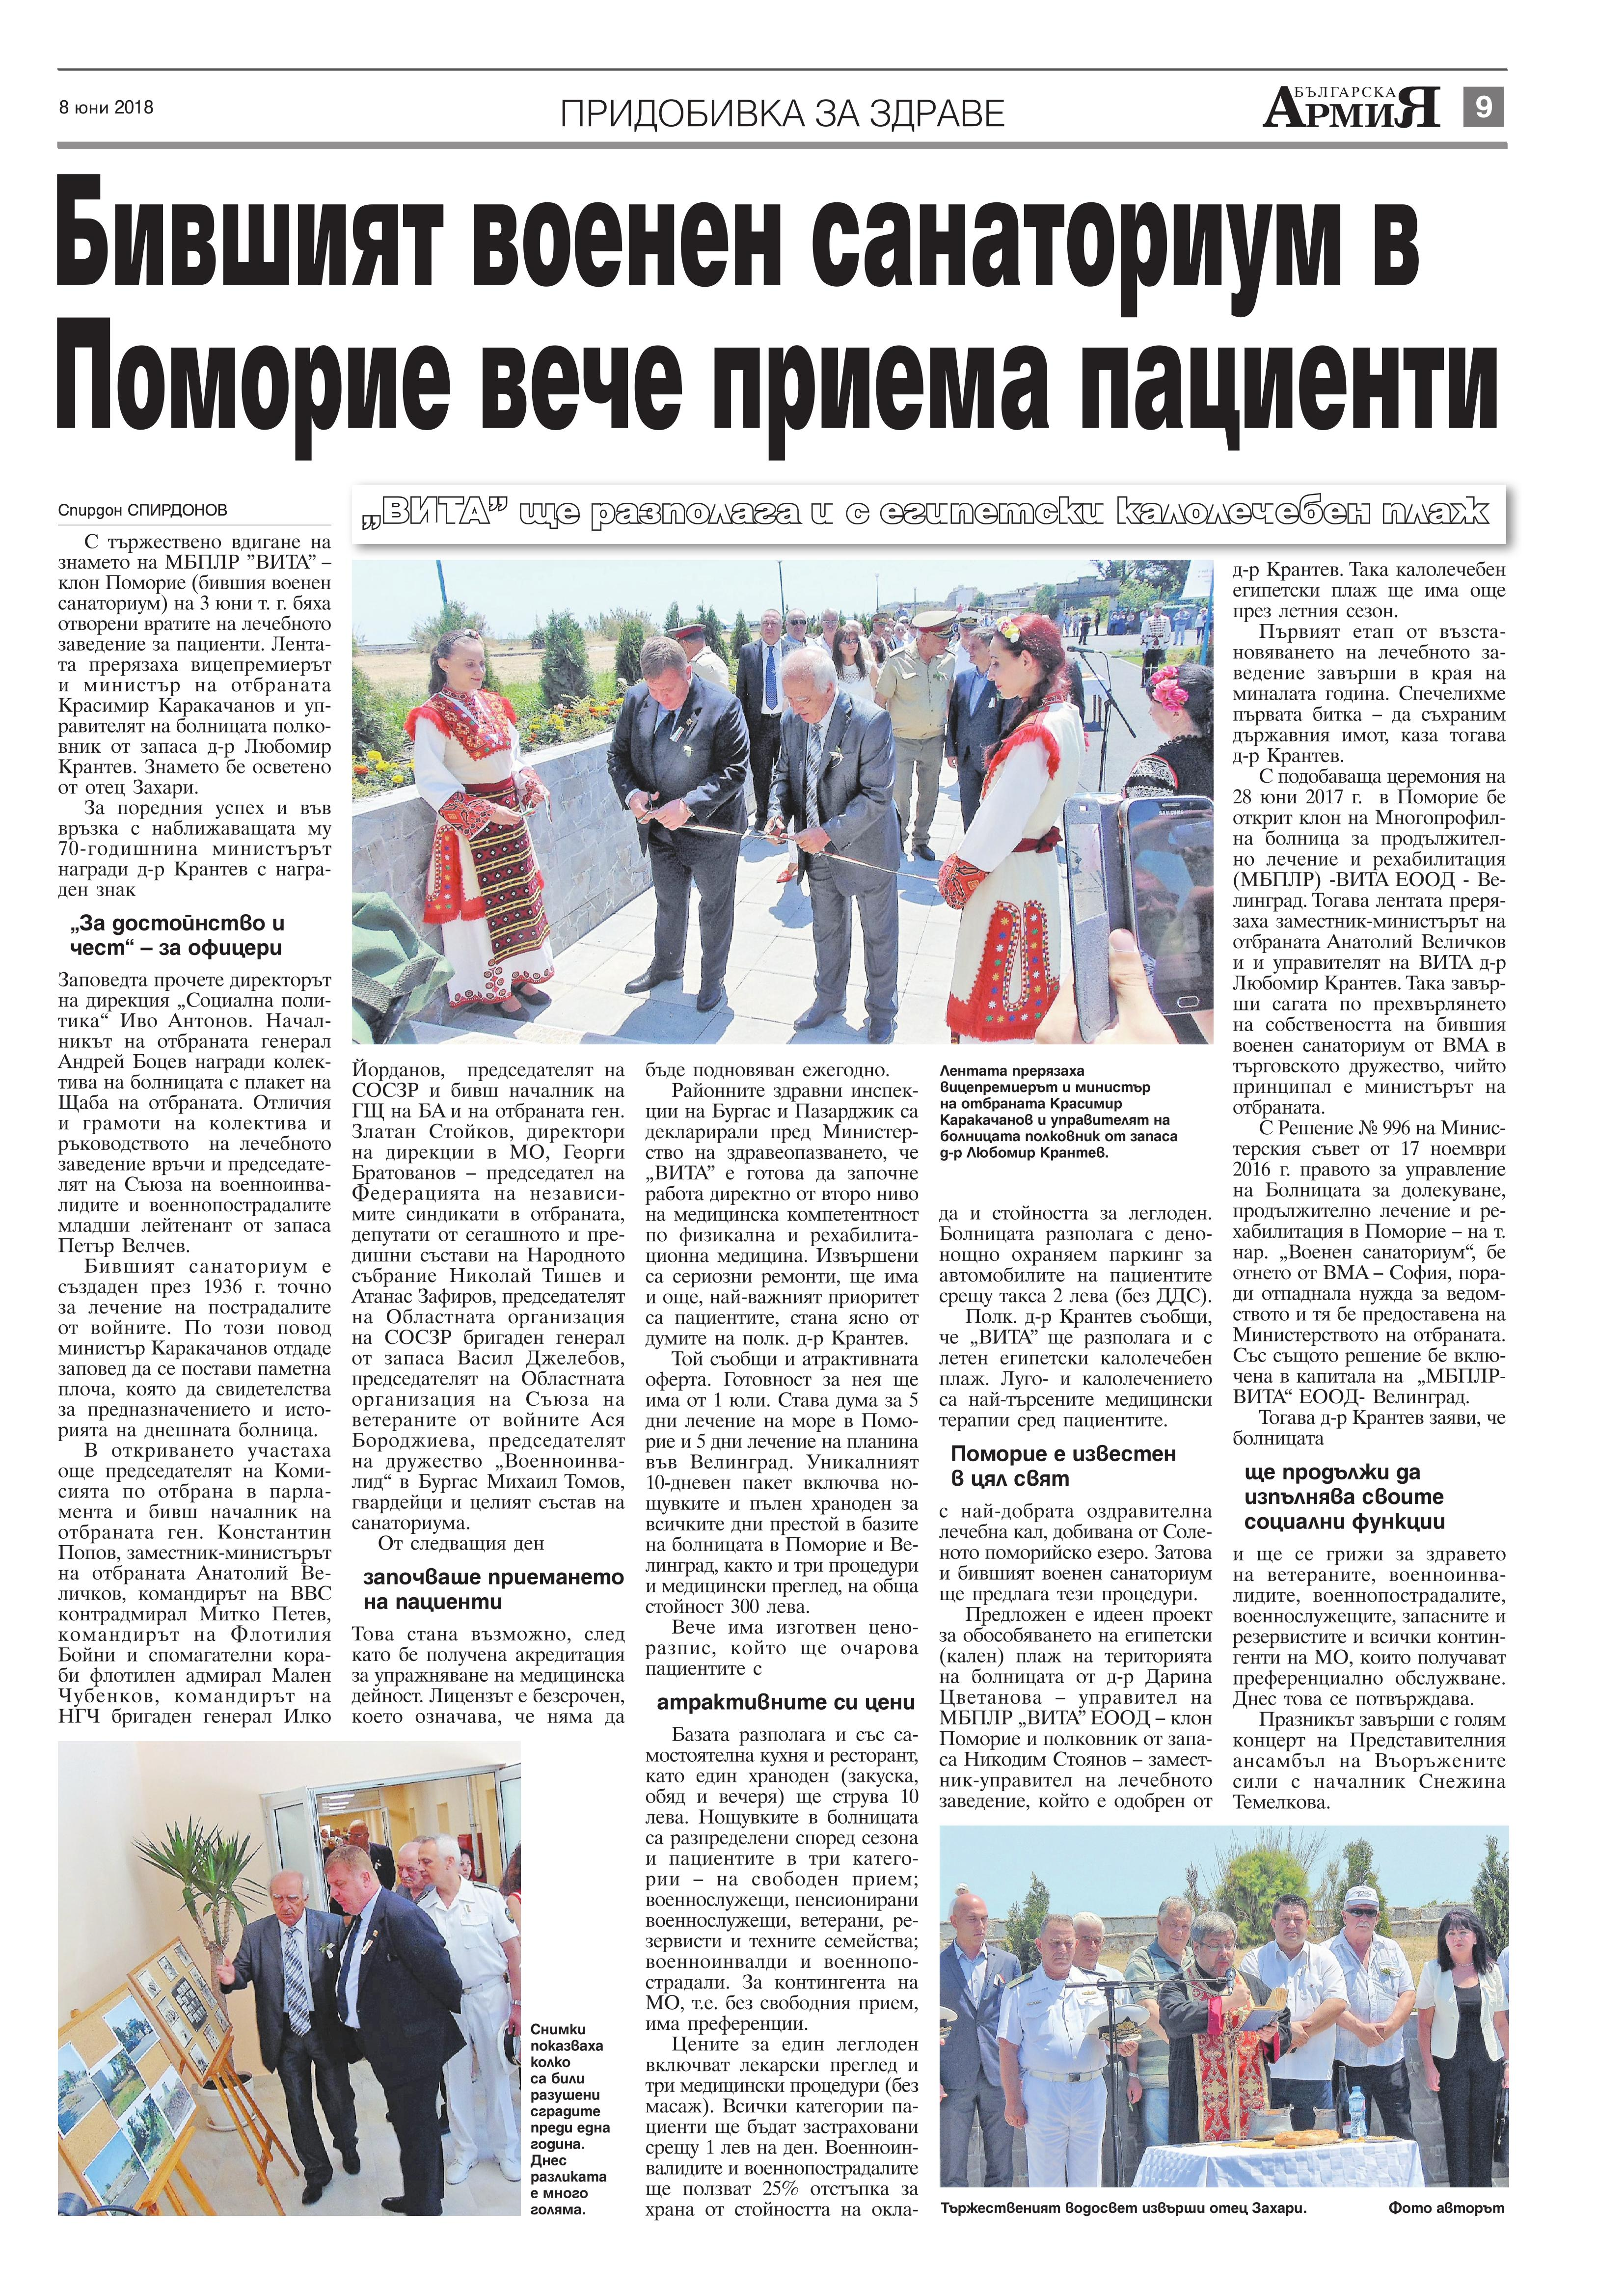 http://armymedia.bg/wp-content/uploads/2015/06/09.page1_-52.jpg